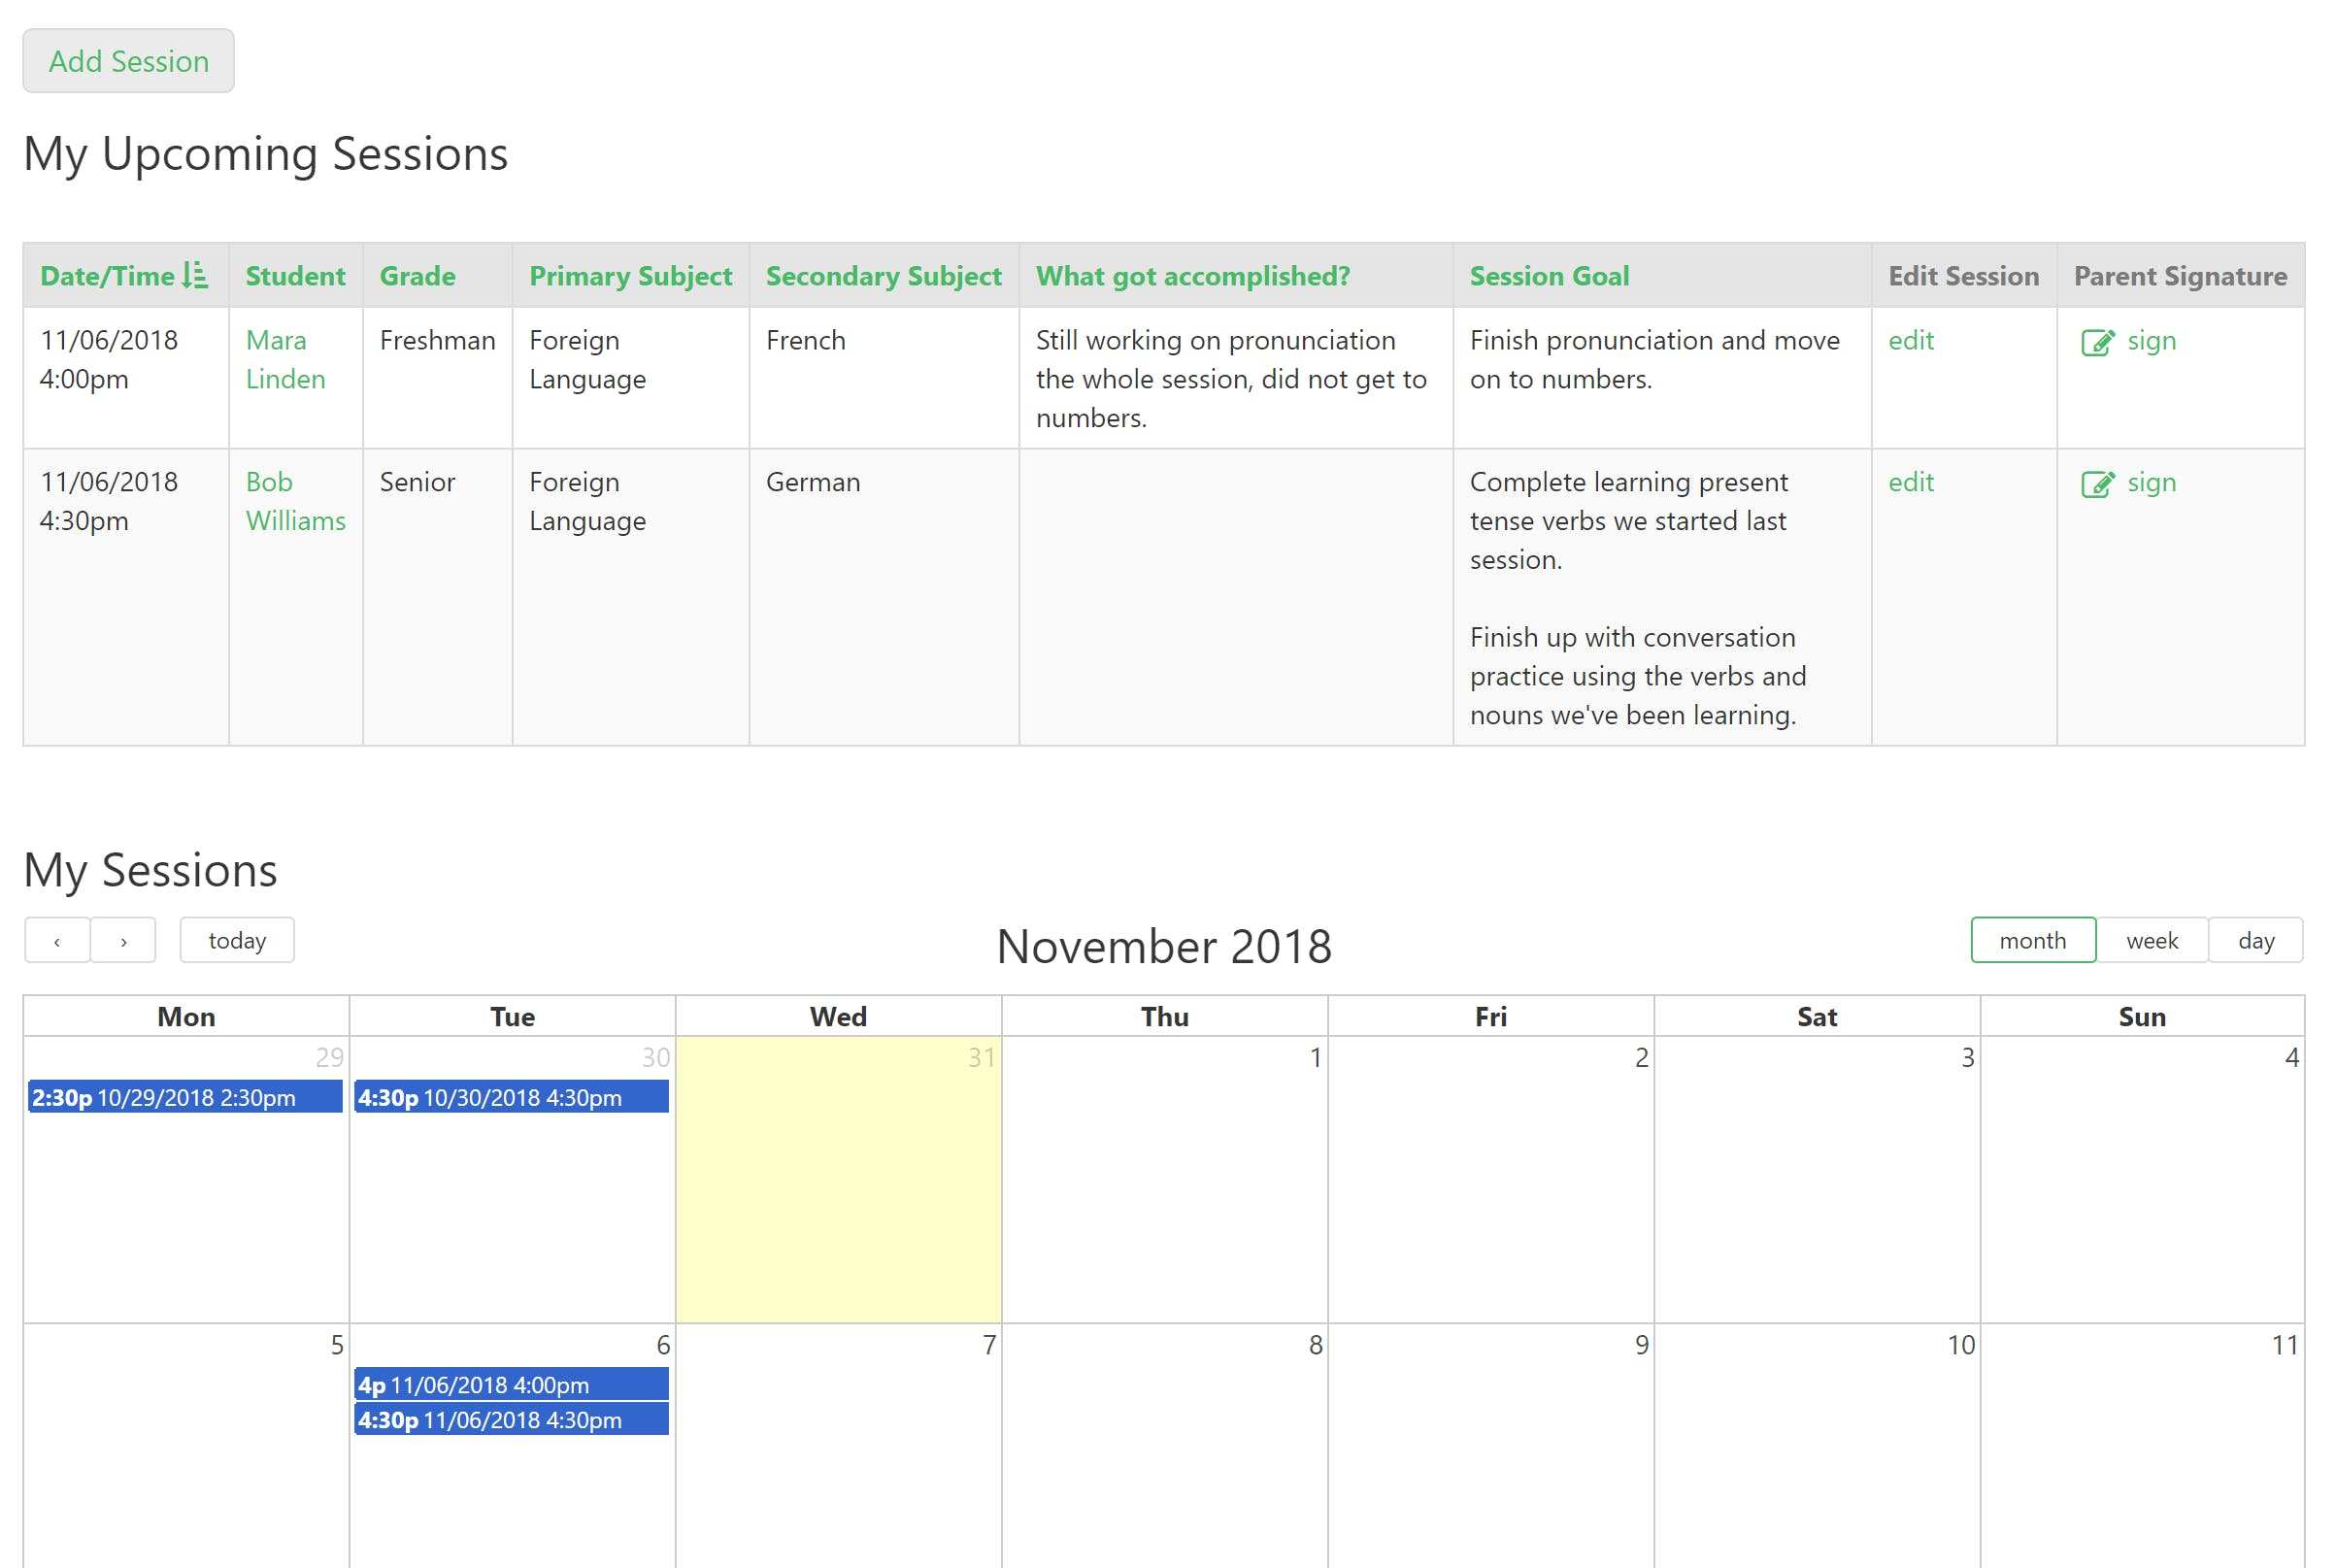 Tutors can view upcoming sessions in a table or calendar view format.